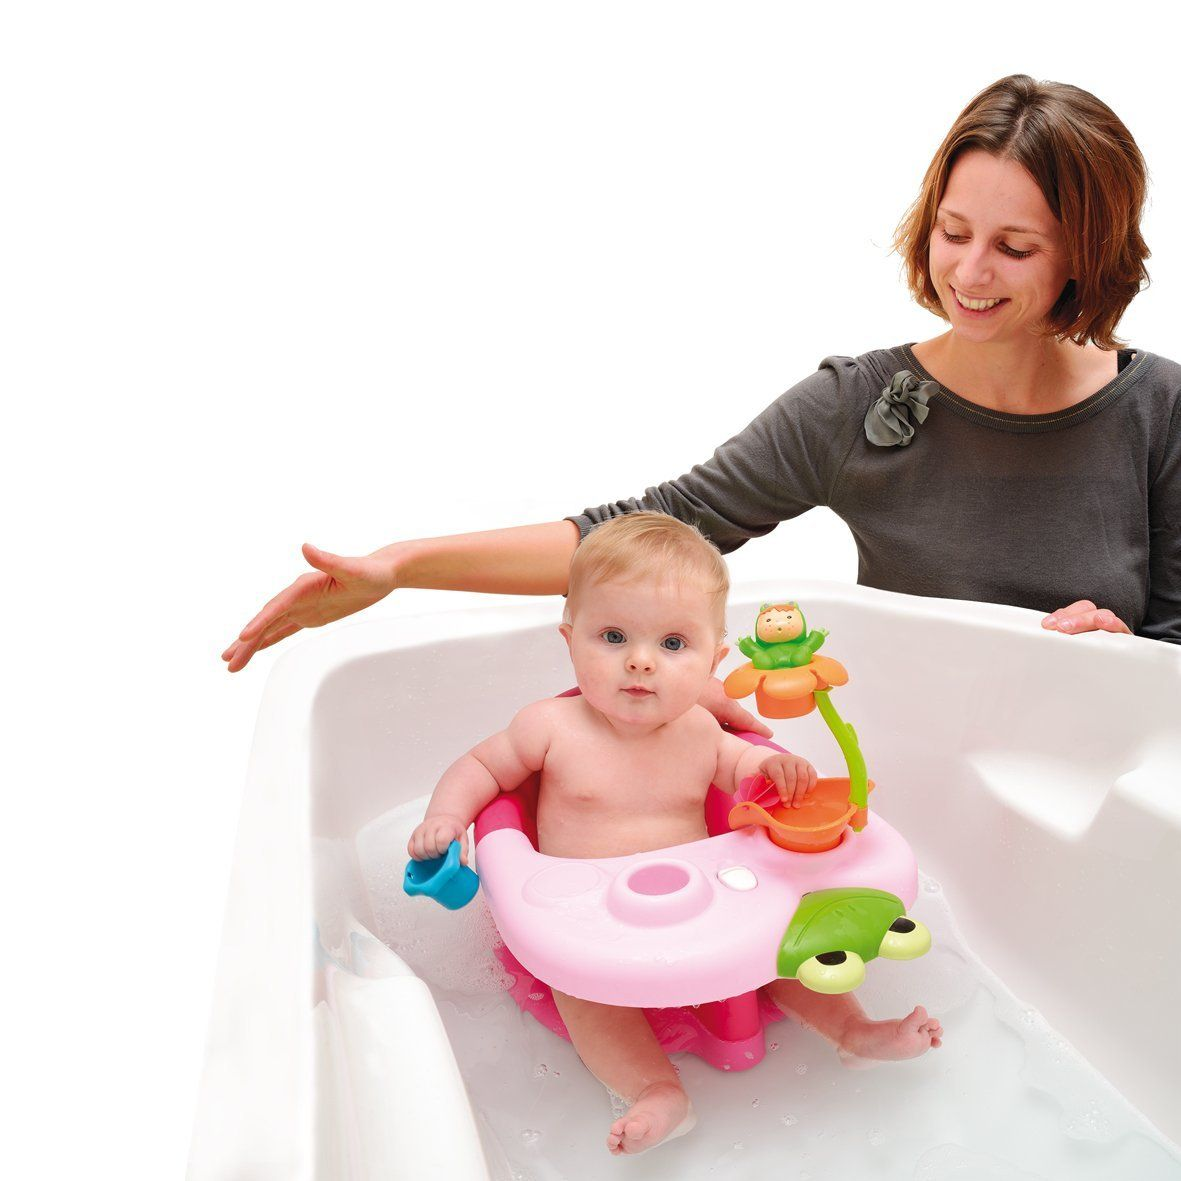 Smoby 211 131 Bagno Giocattolo Bagno Rose Cotoons Siege